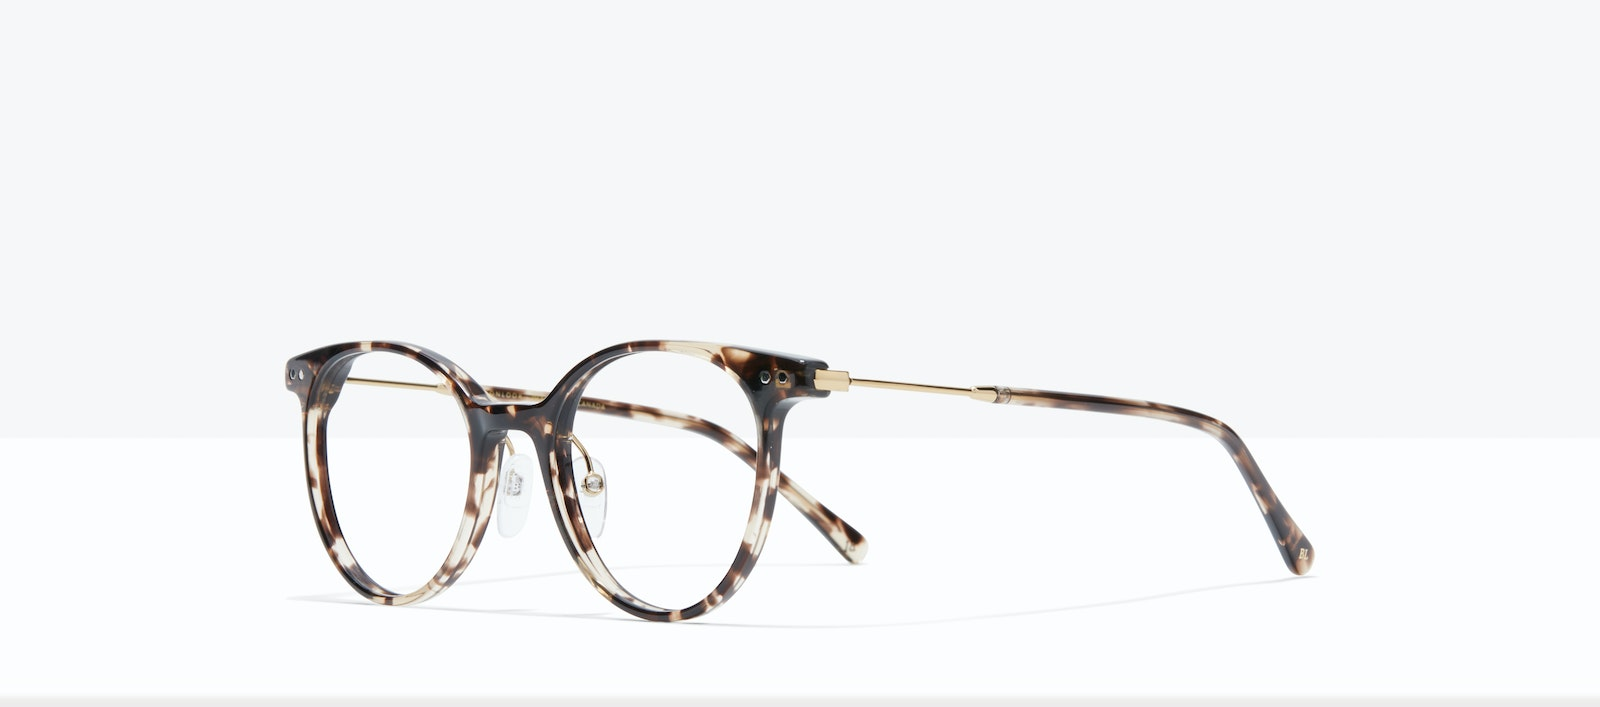 Affordable Fashion Glasses Round Eyeglasses Women Lightheart L Leopard Tilt